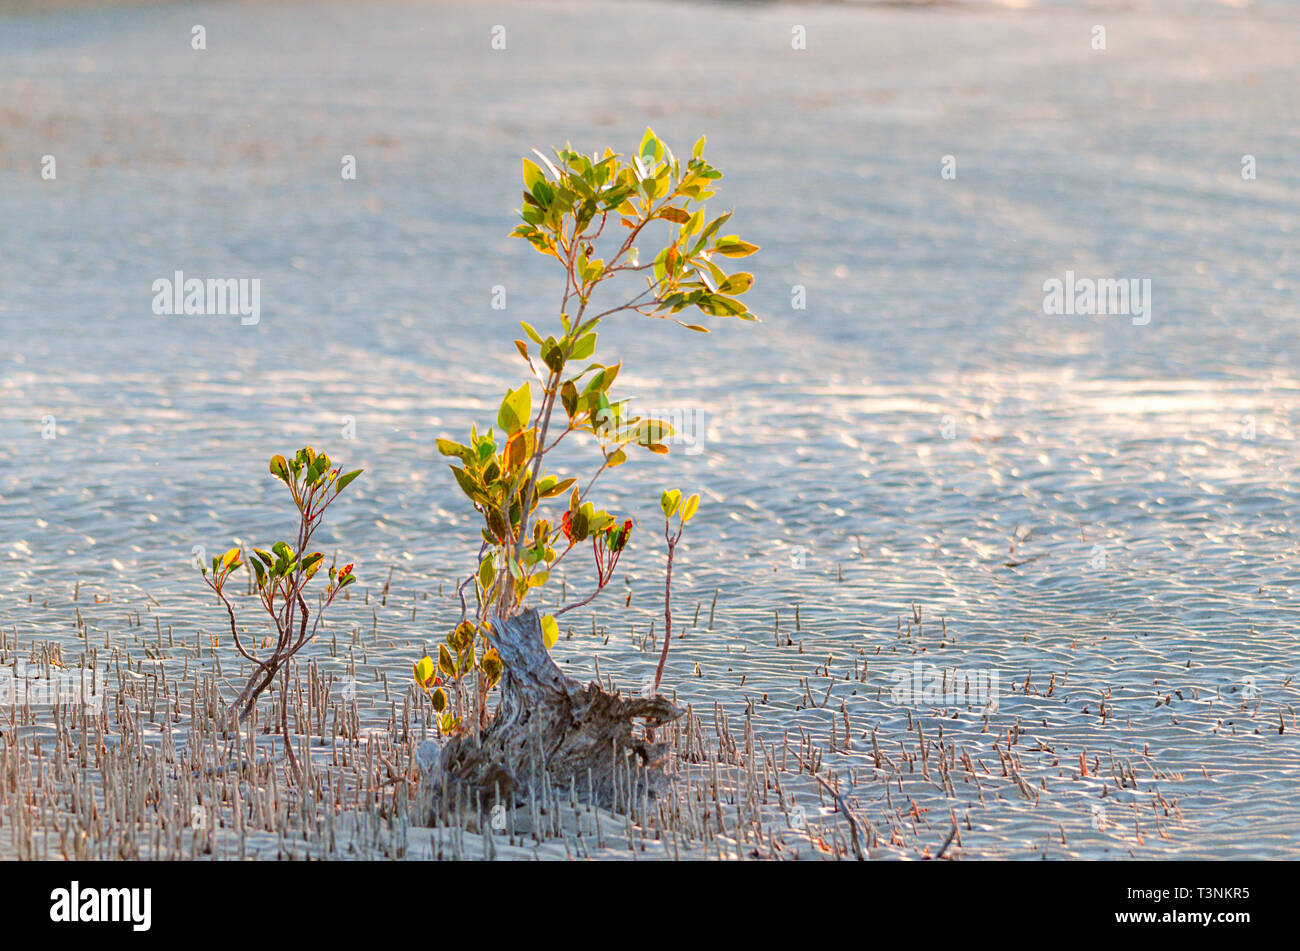 Young mangroves growing on sandy tidal flat at Port Smith Western Australia Stock Photo